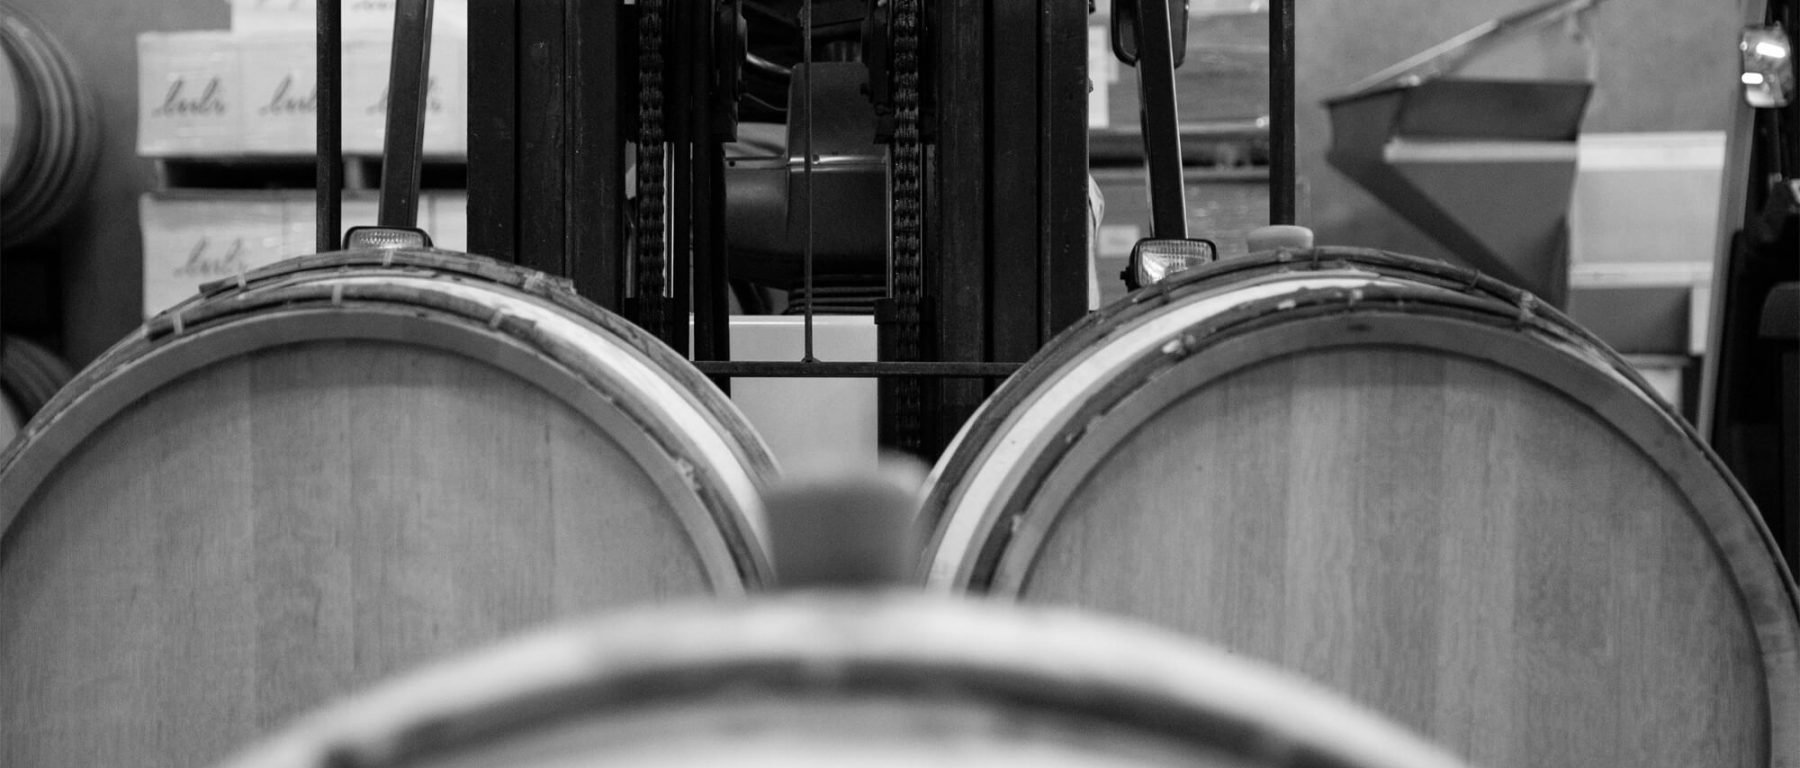 A certified Gravity Wine House employee uses a forklift to move wine barrels around the facility.